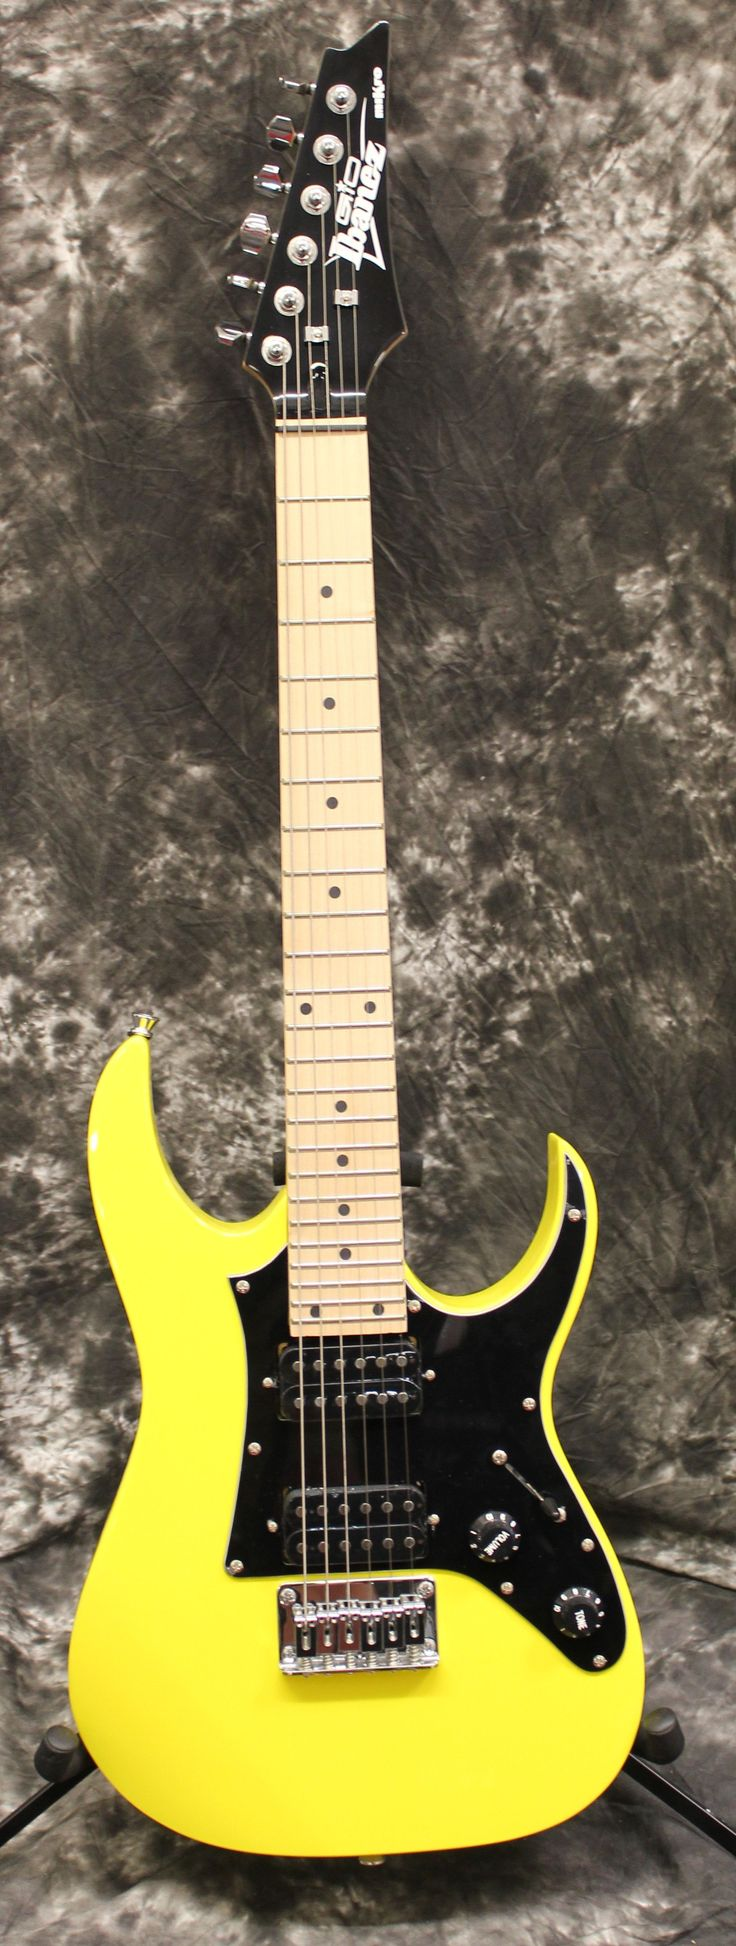 viper electric guitar review viper wiring diagram free pressauto net oliver 550 wiring diagram ibanez rg [ 736 x 1946 Pixel ]